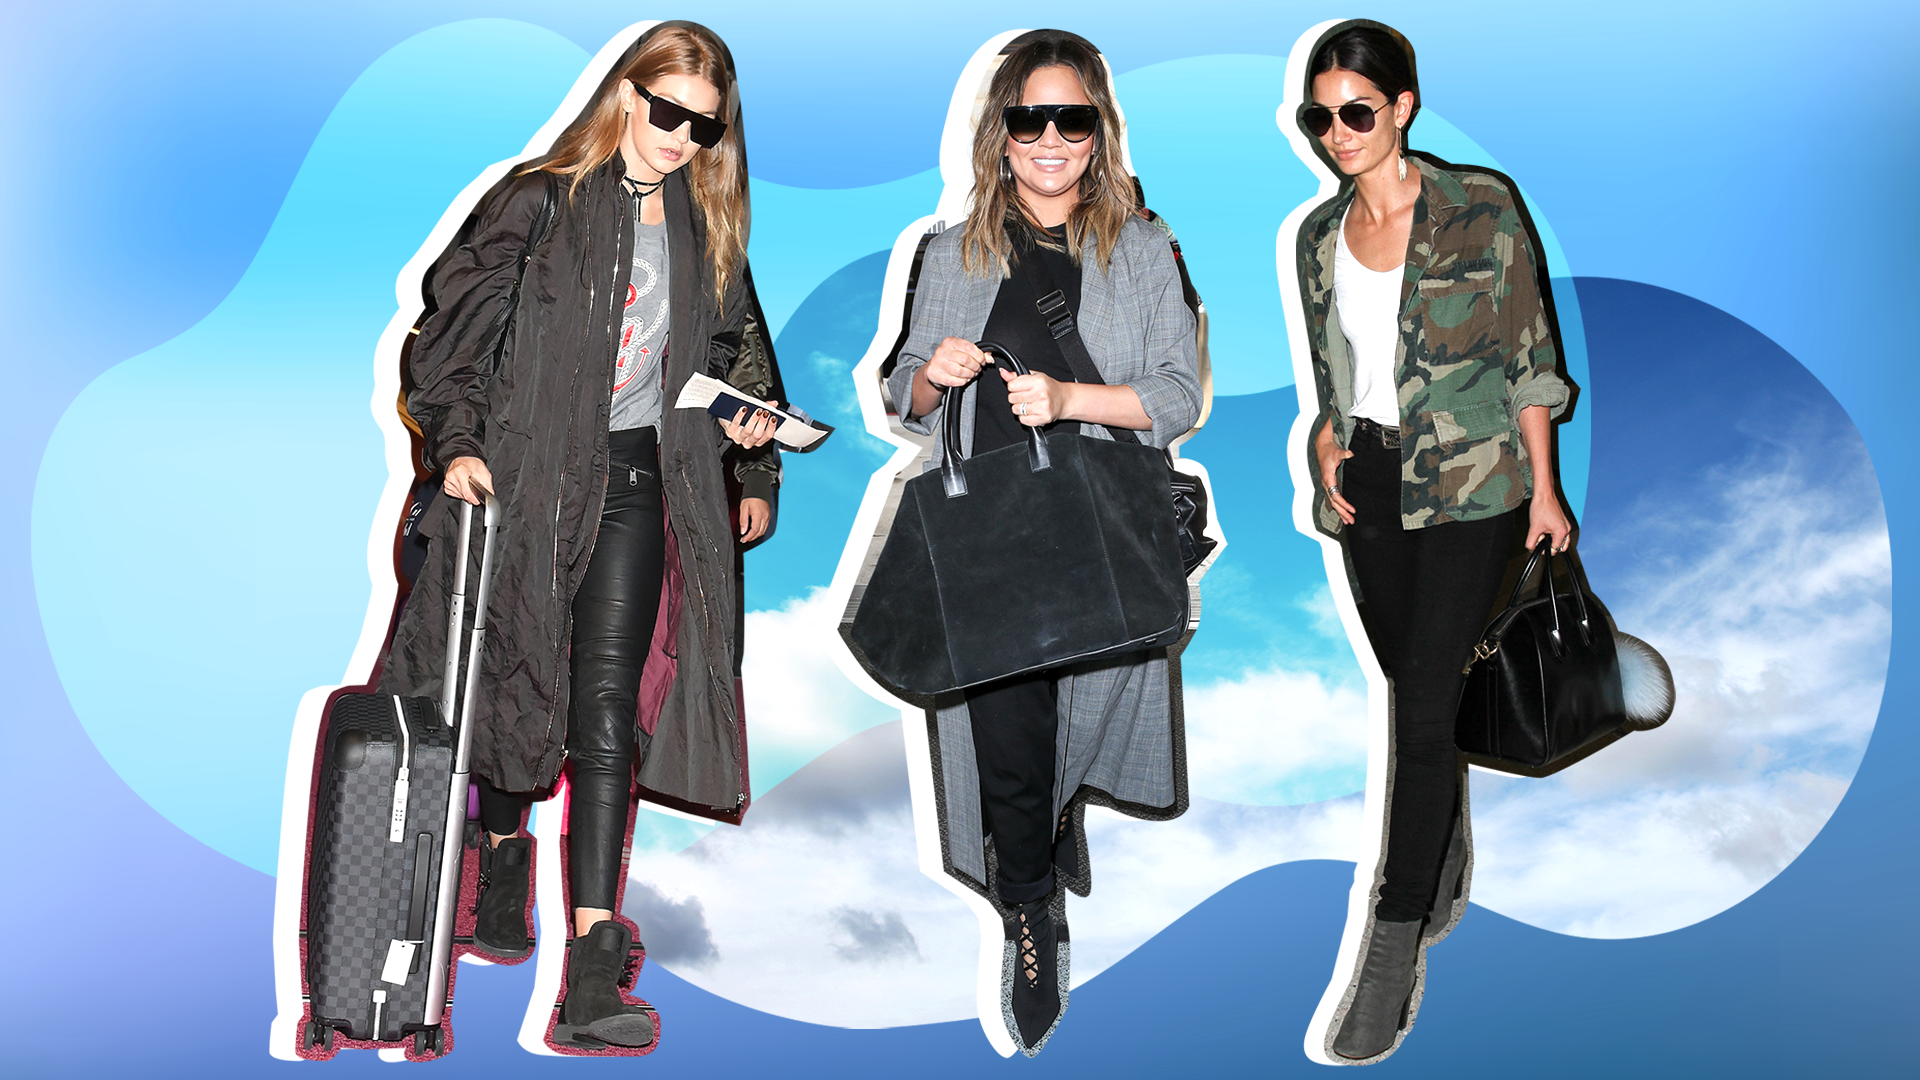 10 Genius Celebrity Packing Hacks to Make Your Vacations Stress-Free